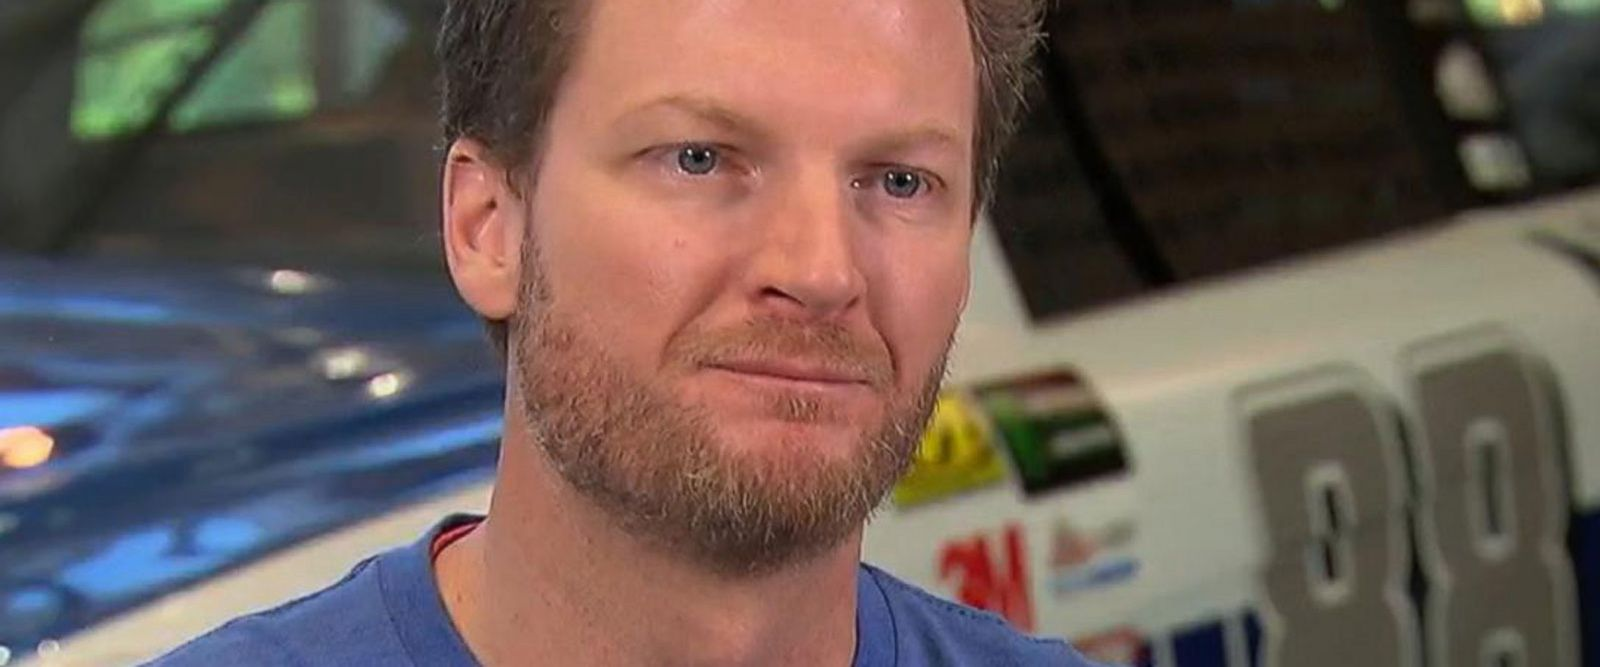 VIDEO: Dale Earnhardt, Jr. on what he'd want to tell his dad